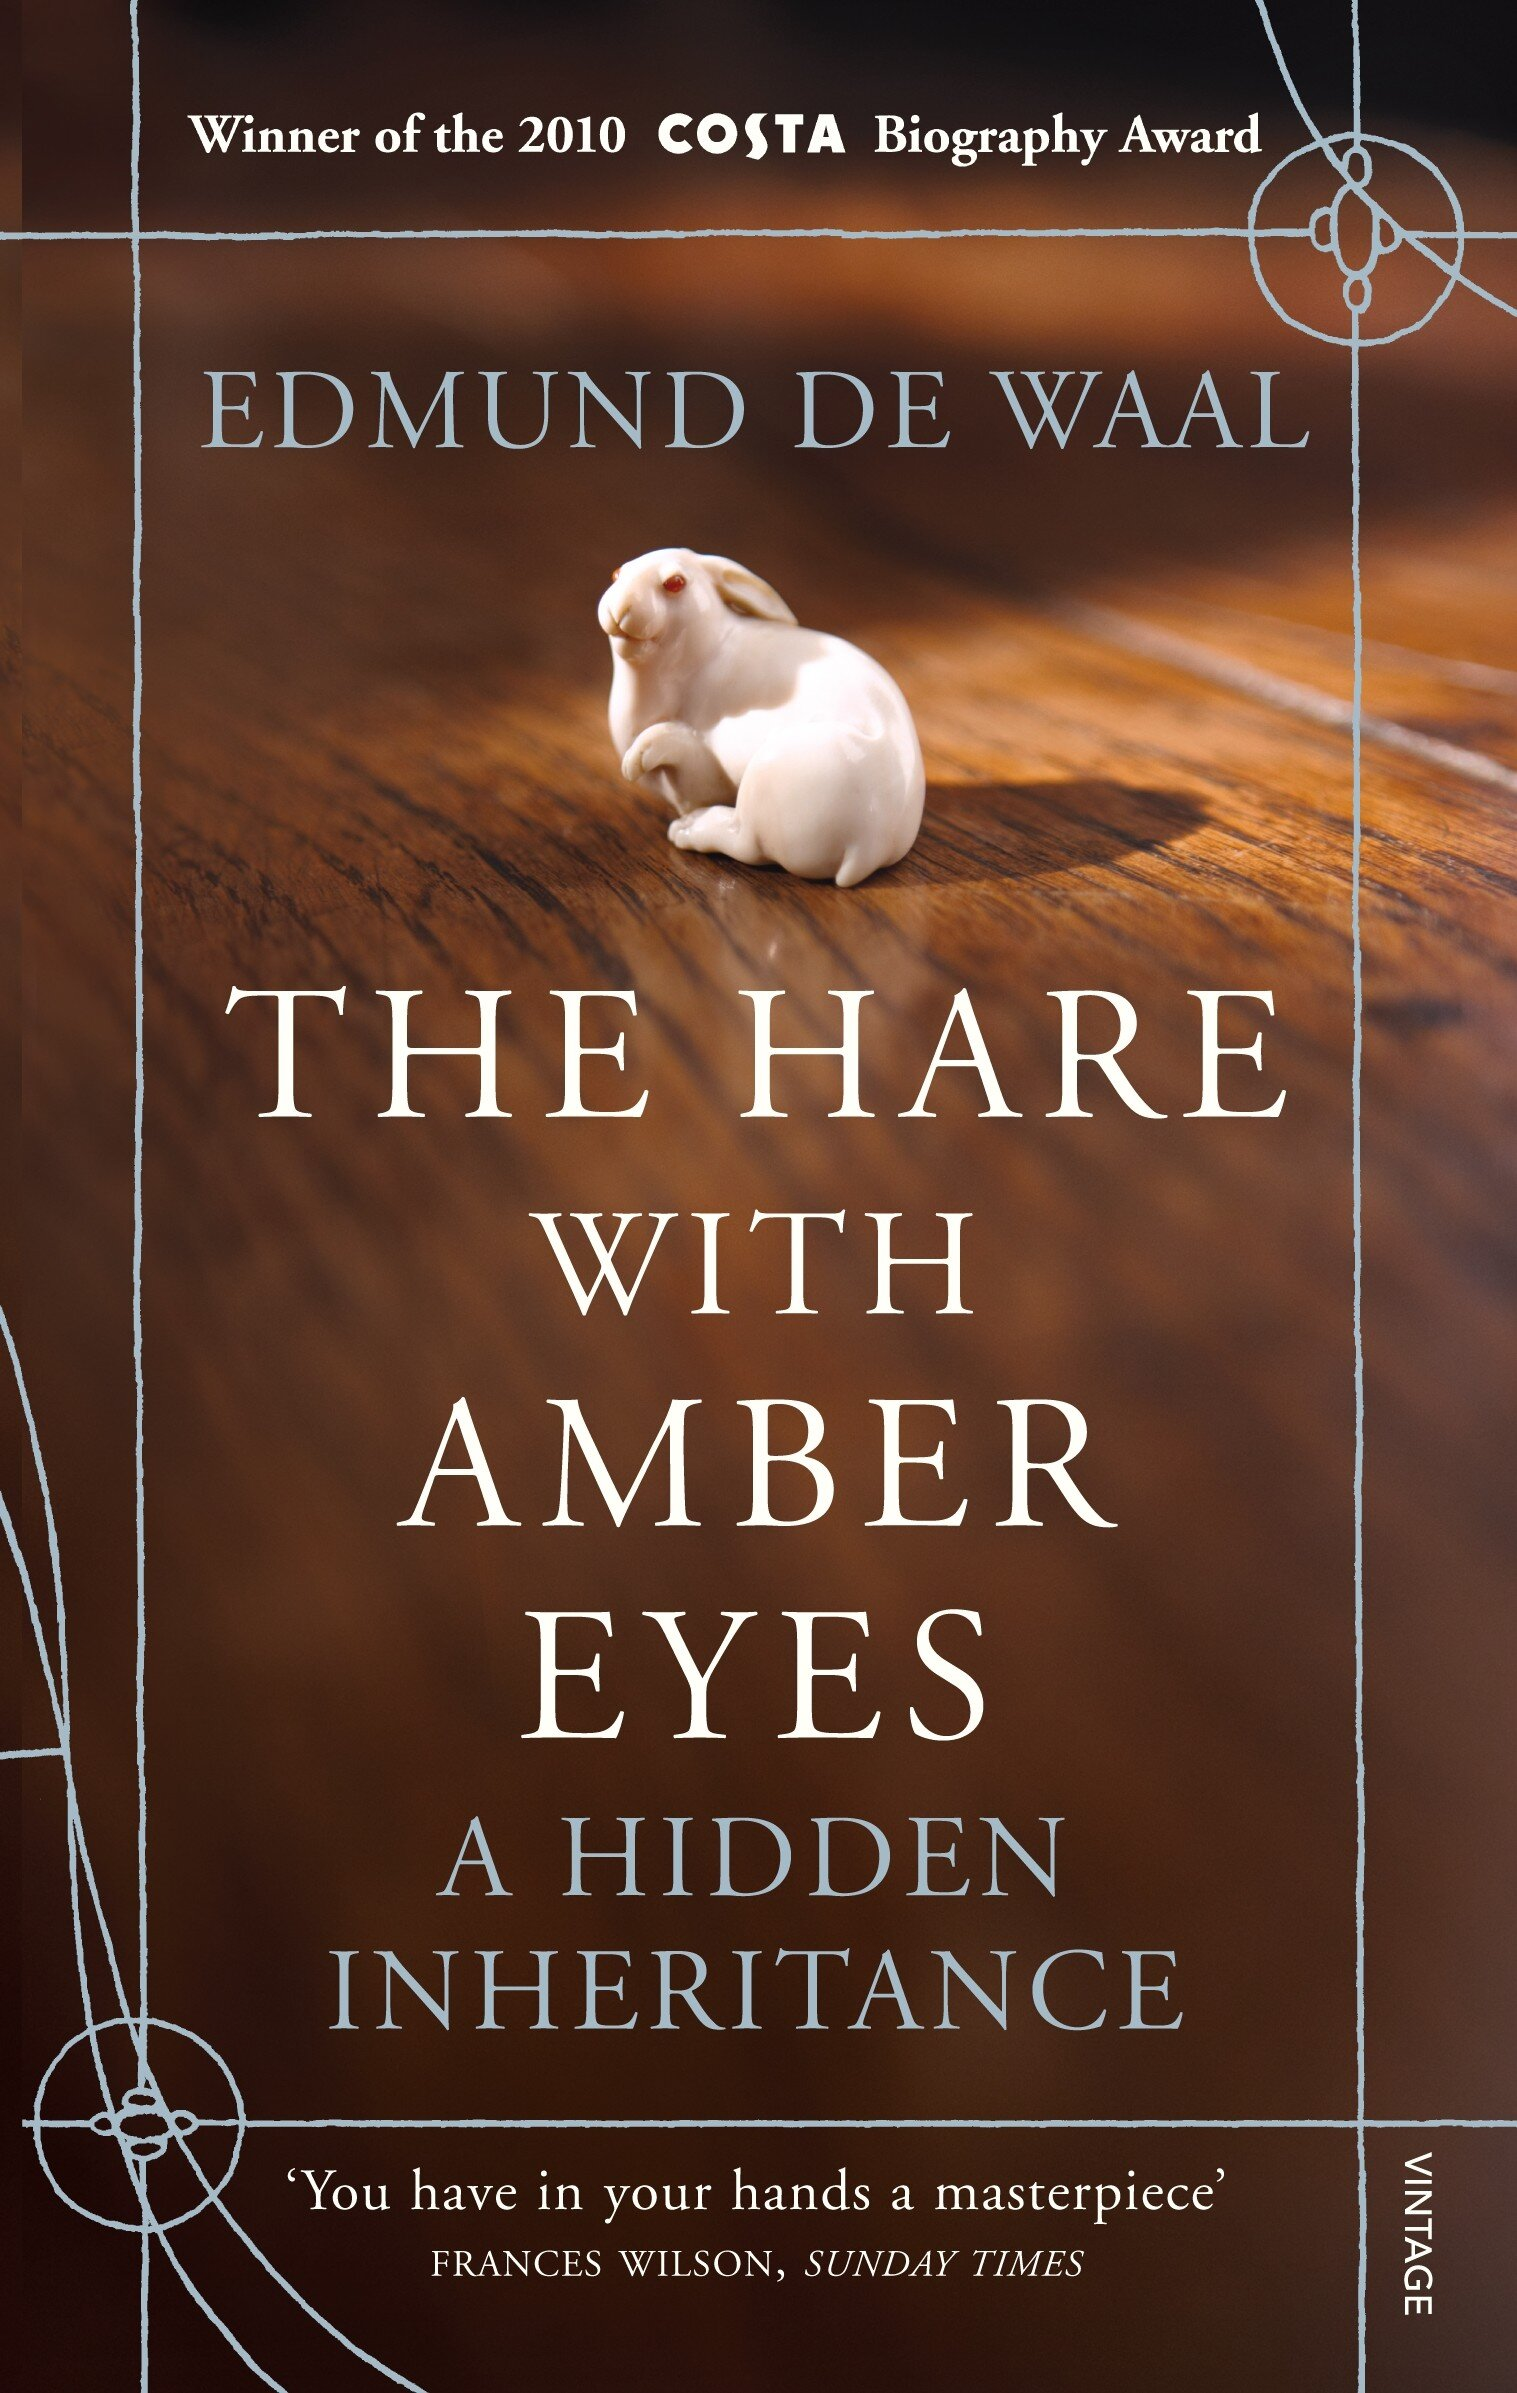 The Hare with Amber Eyes: A Hidden Inheritance